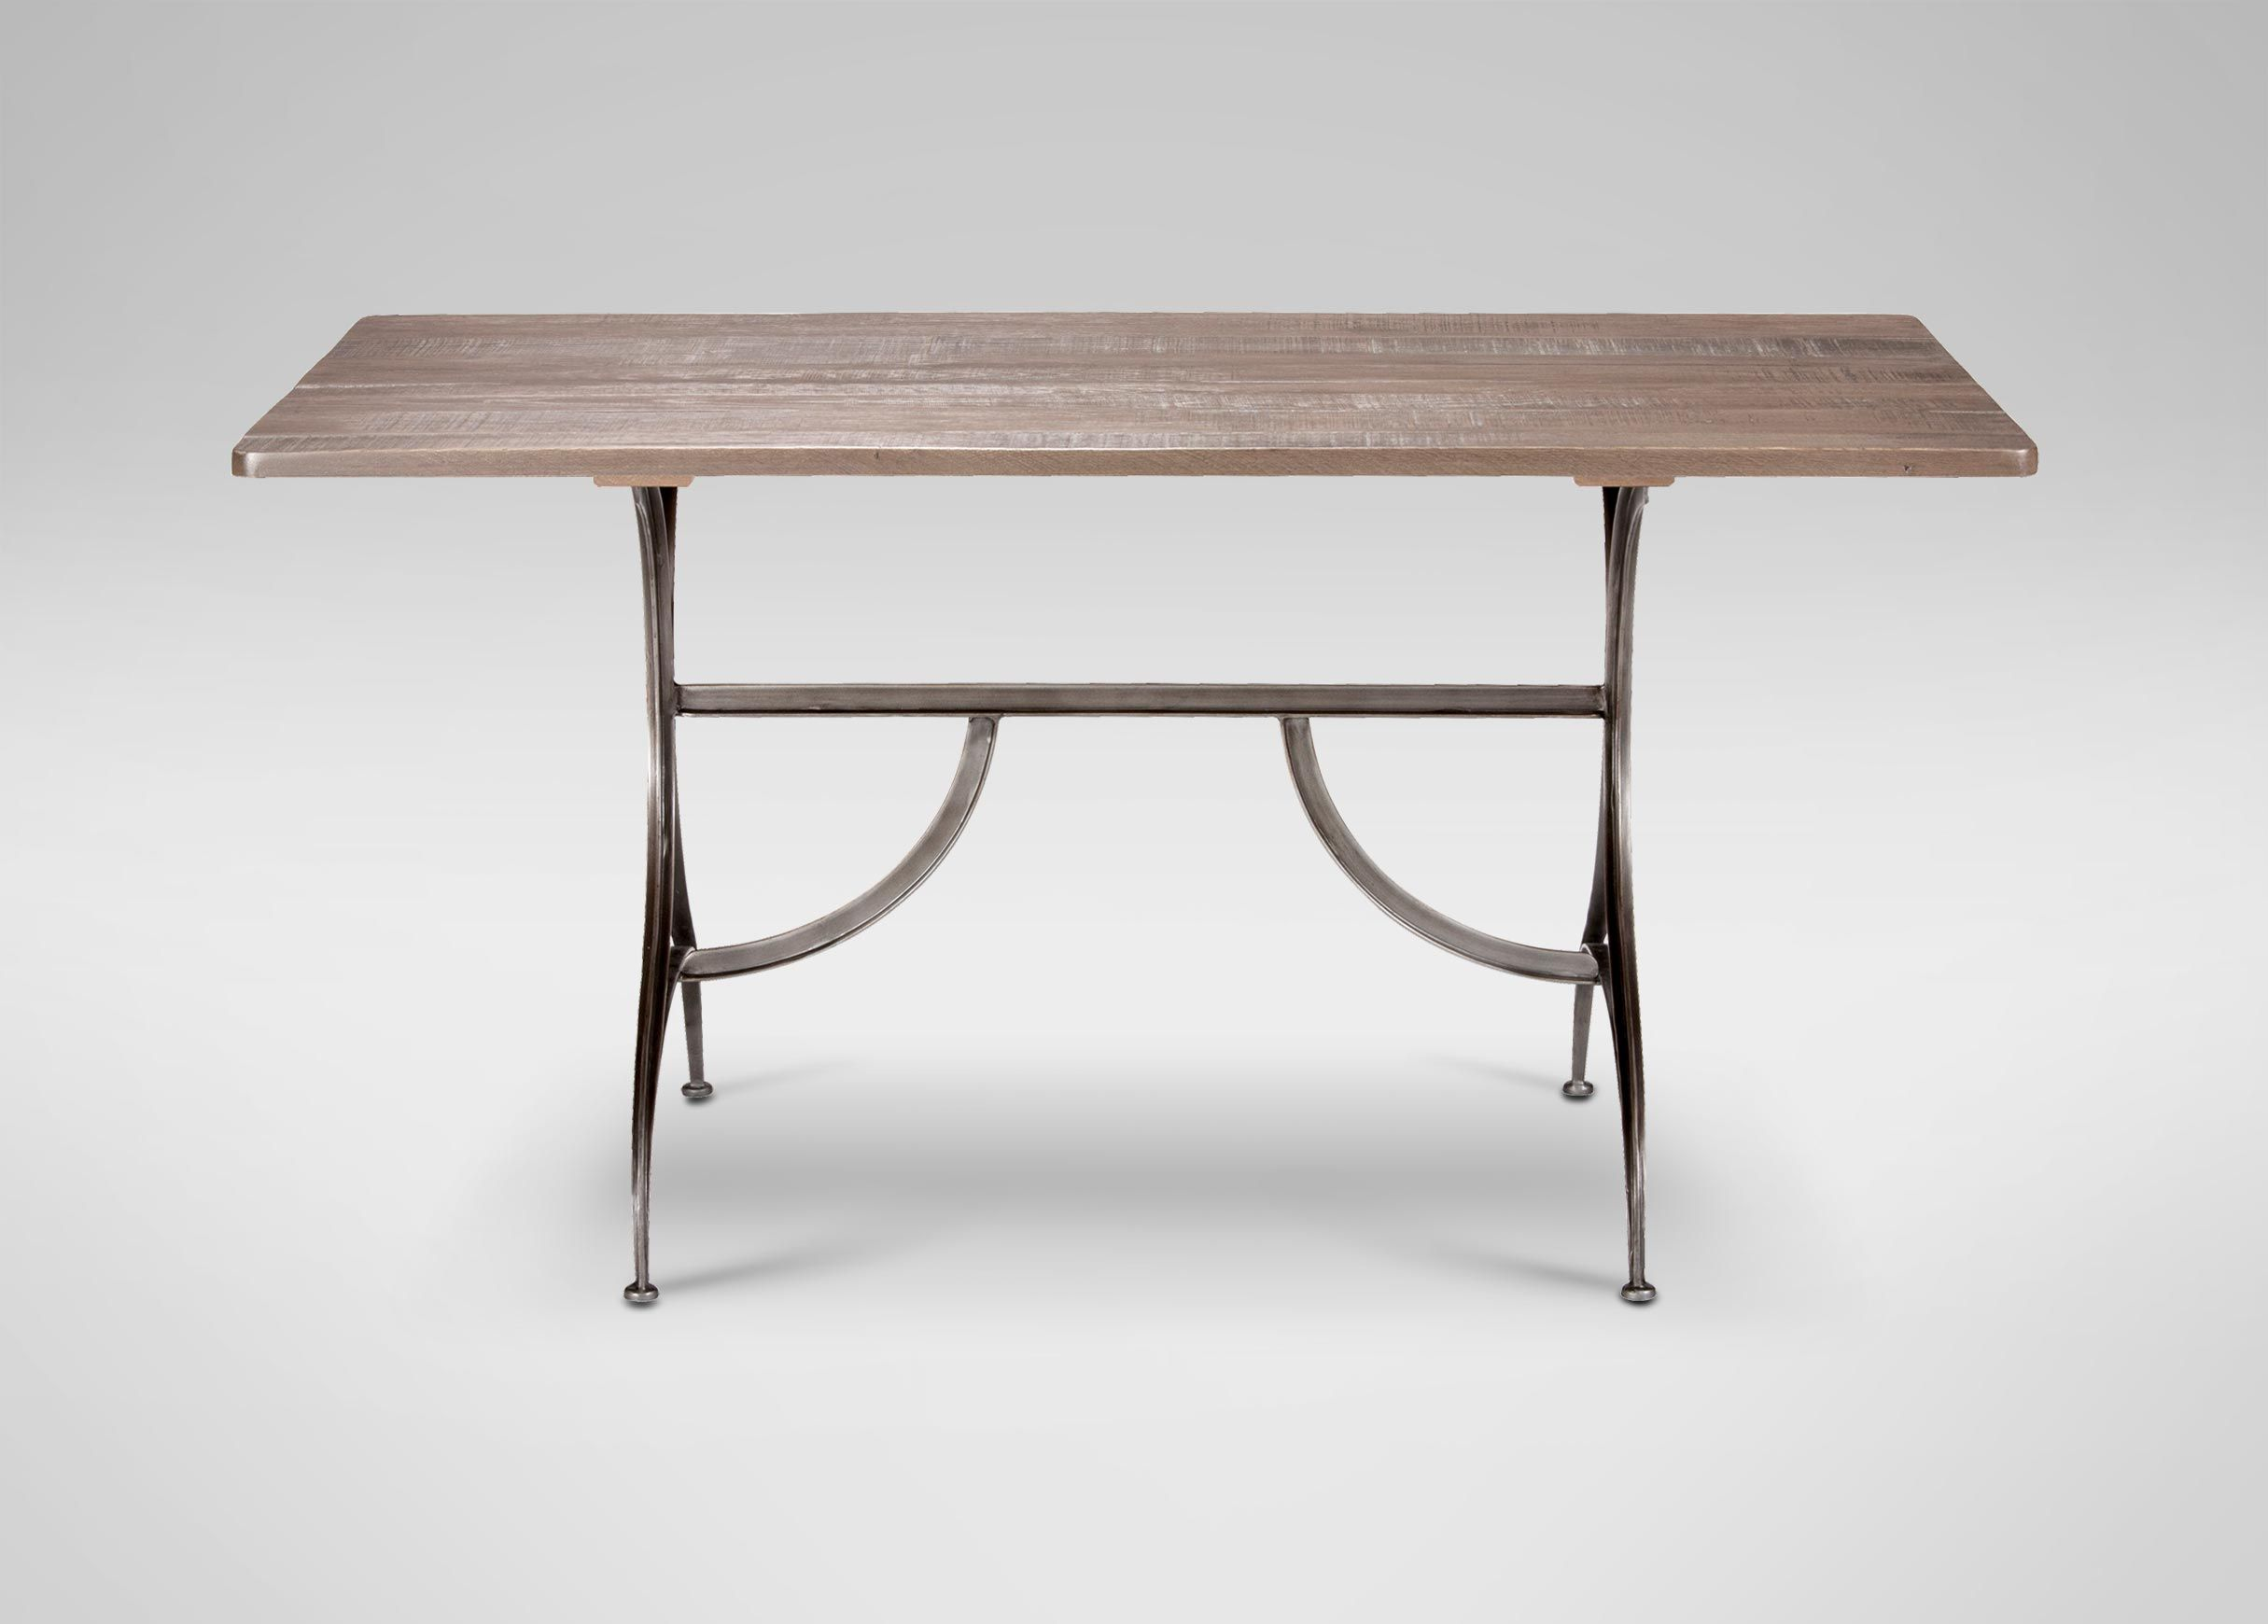 finland table dining tables ethan allen cindy pinterest